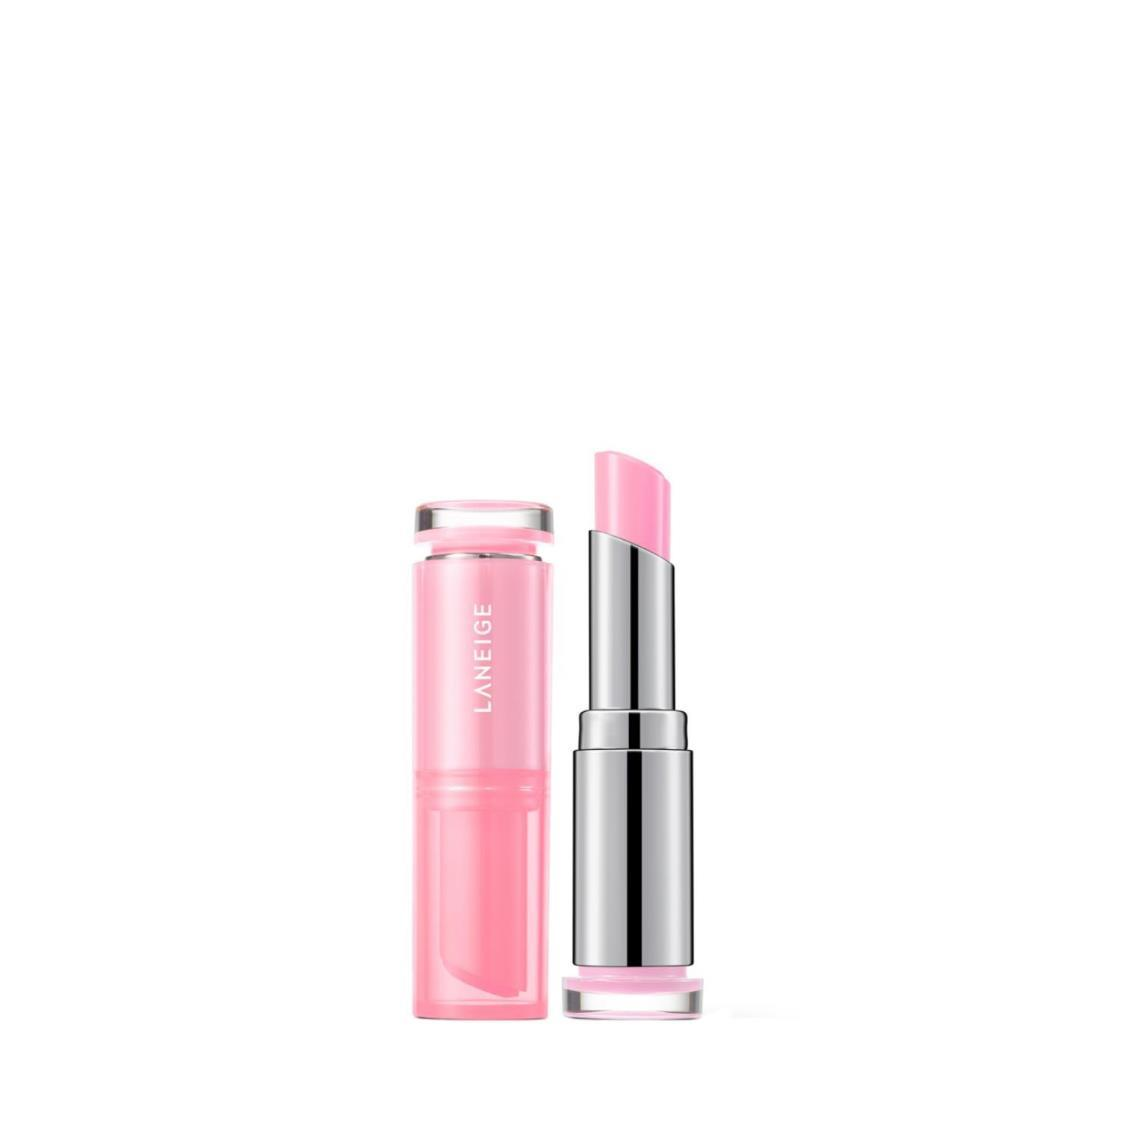 Laneige Stained Glow Lip Balm No3 Mandarin Coral